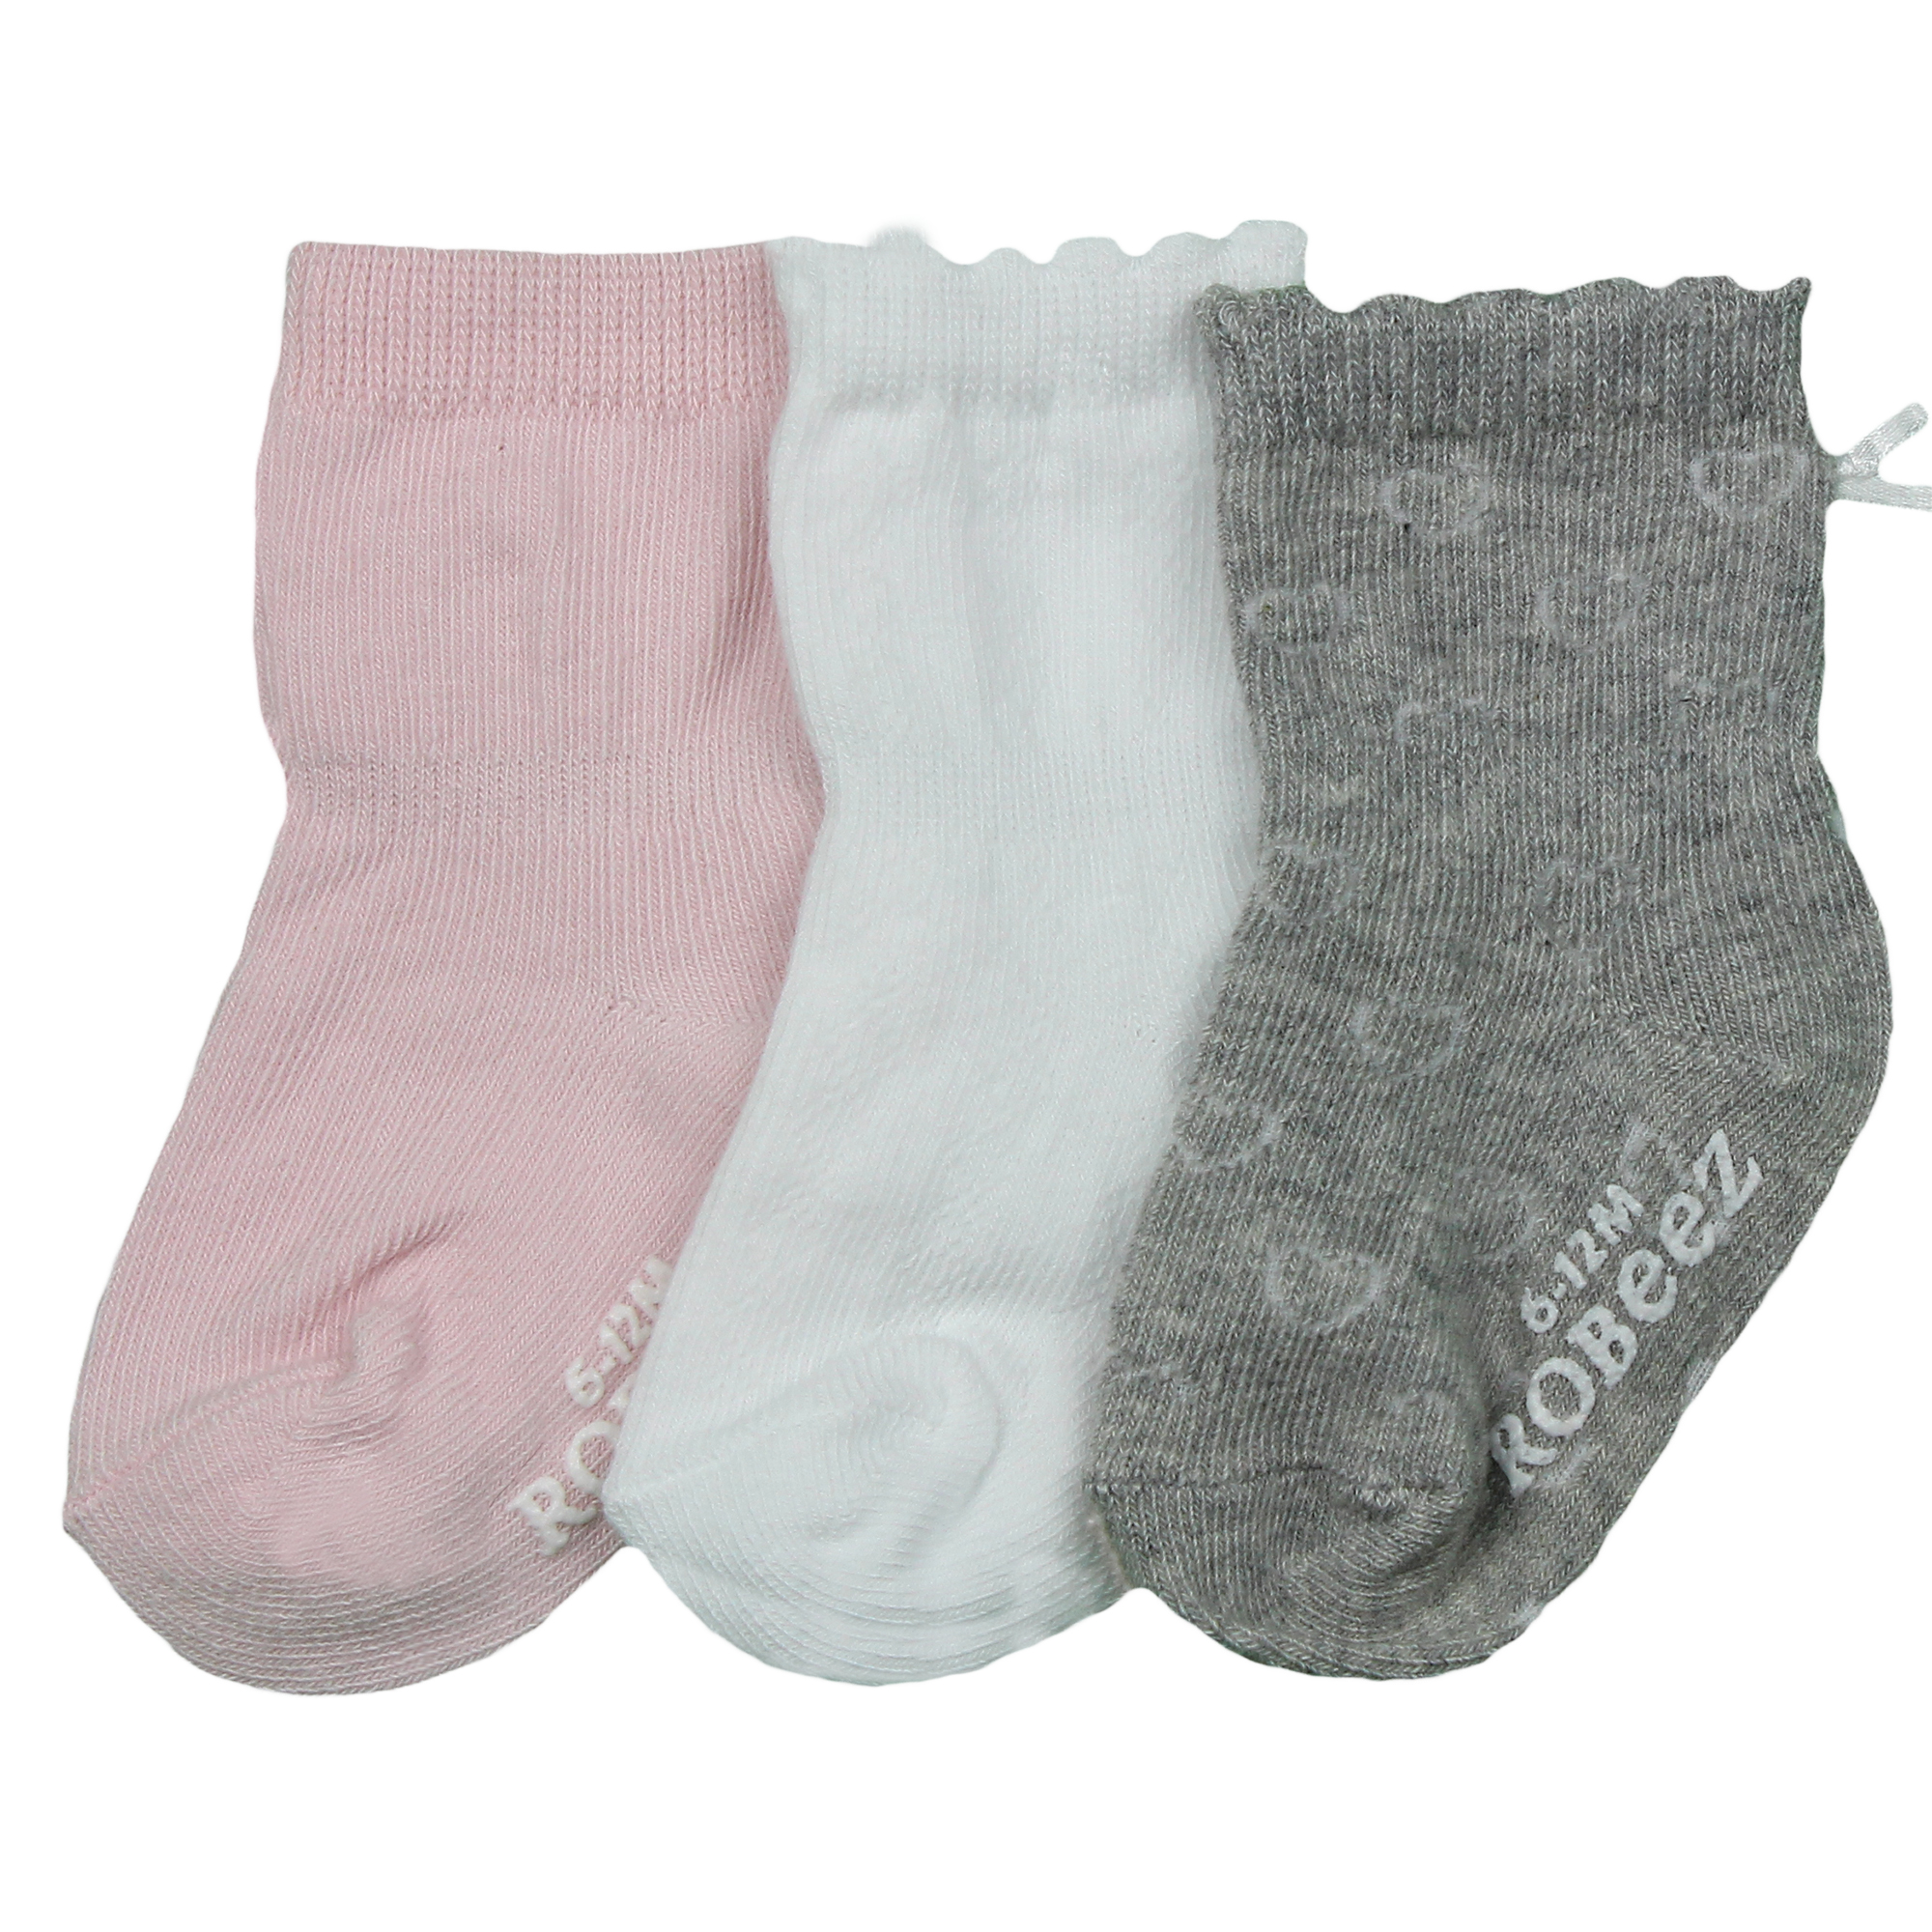 Baby Pink 6-12 Months Stay ON Baby Socks 3 Pairs with Stay On Technology